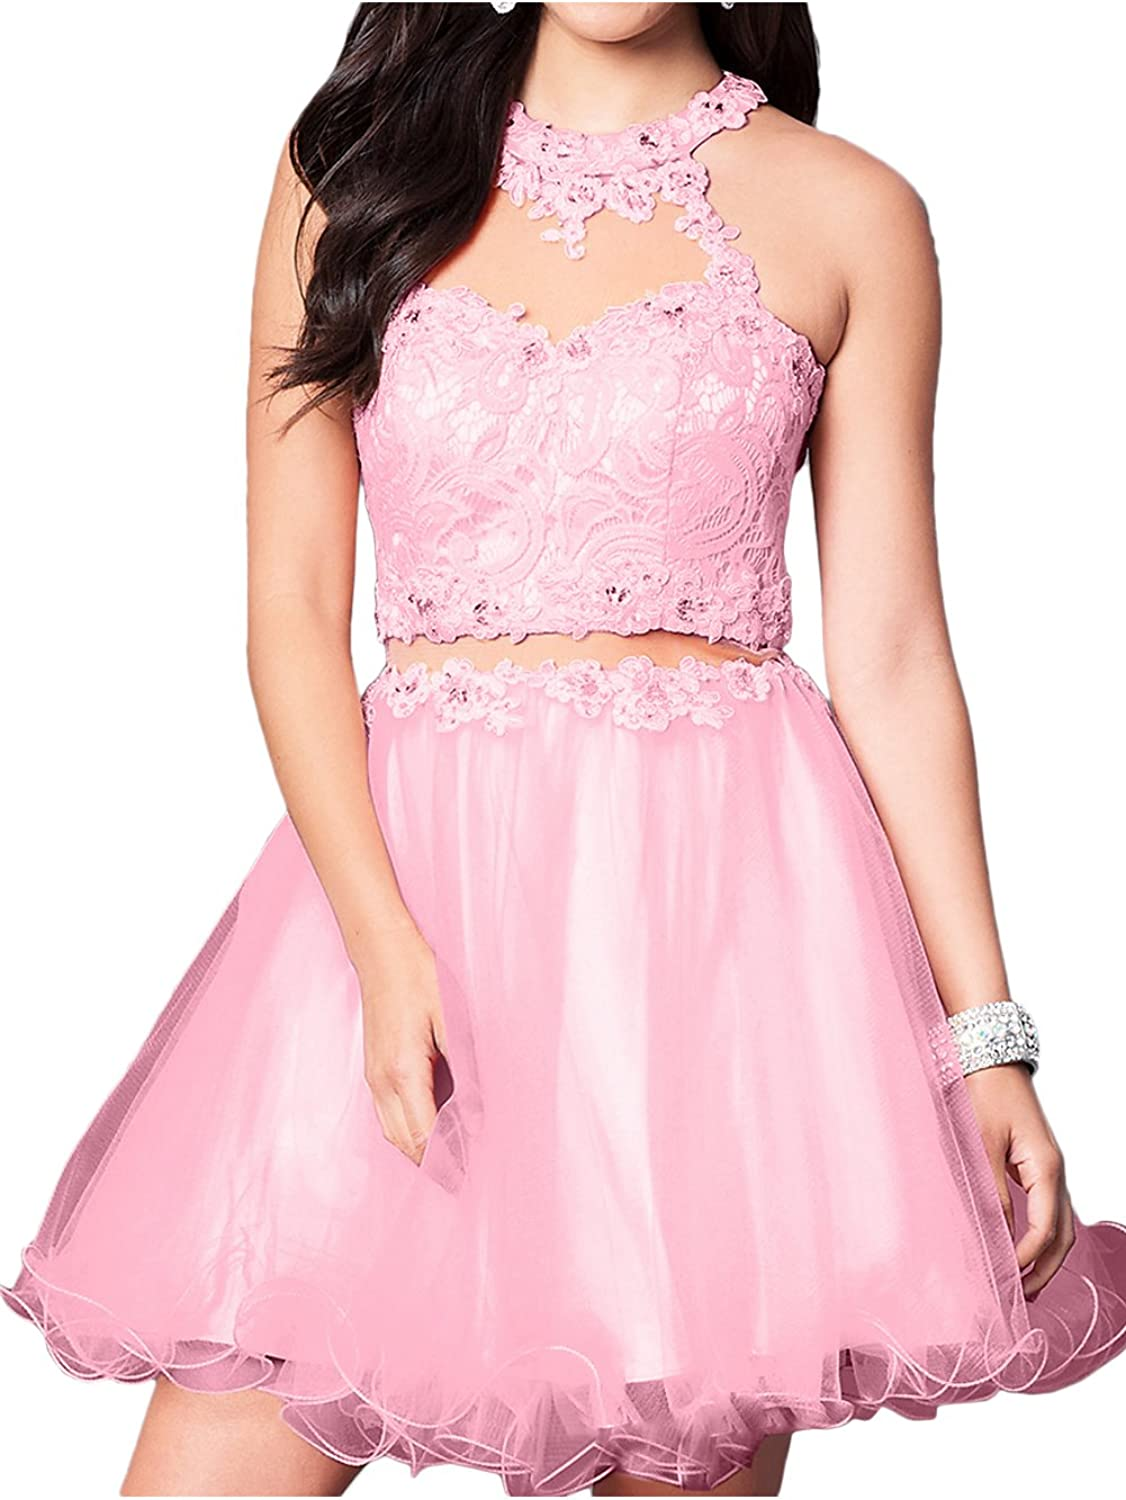 MILANO BRIDE Short Homecoming Dress Ball Gown Lace Back Keyhole Tulle Sweet 16 Dress